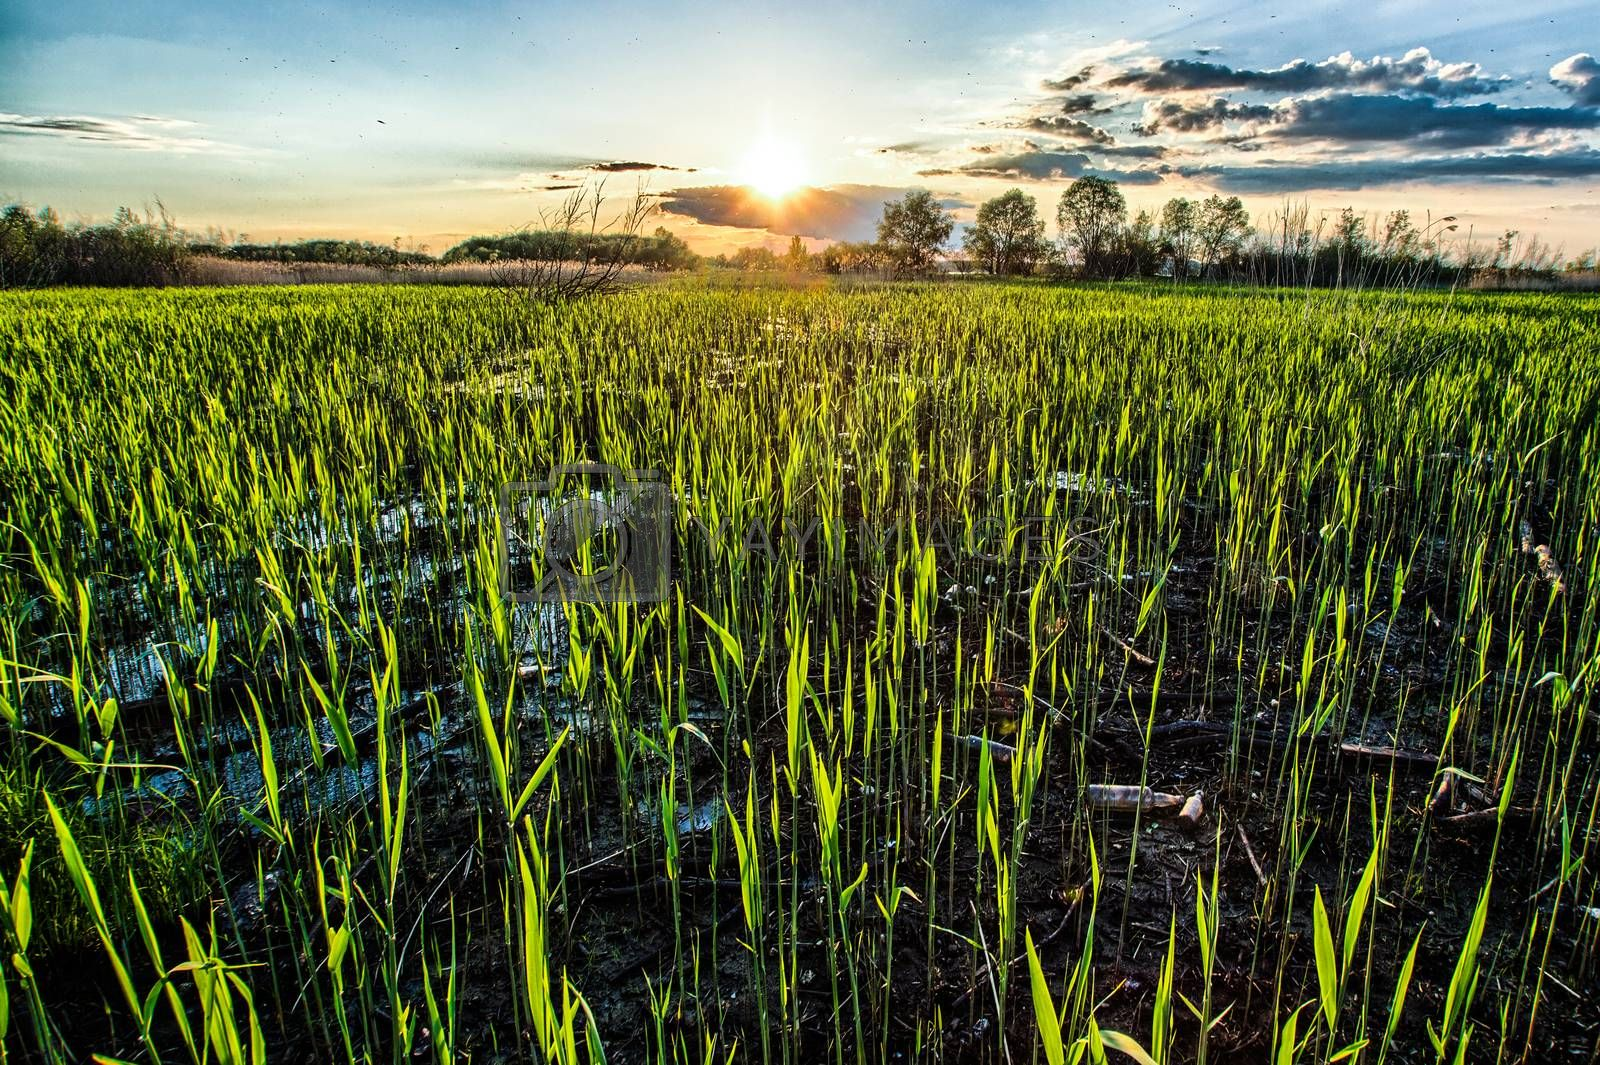 Royalty free image of Corn field by zych